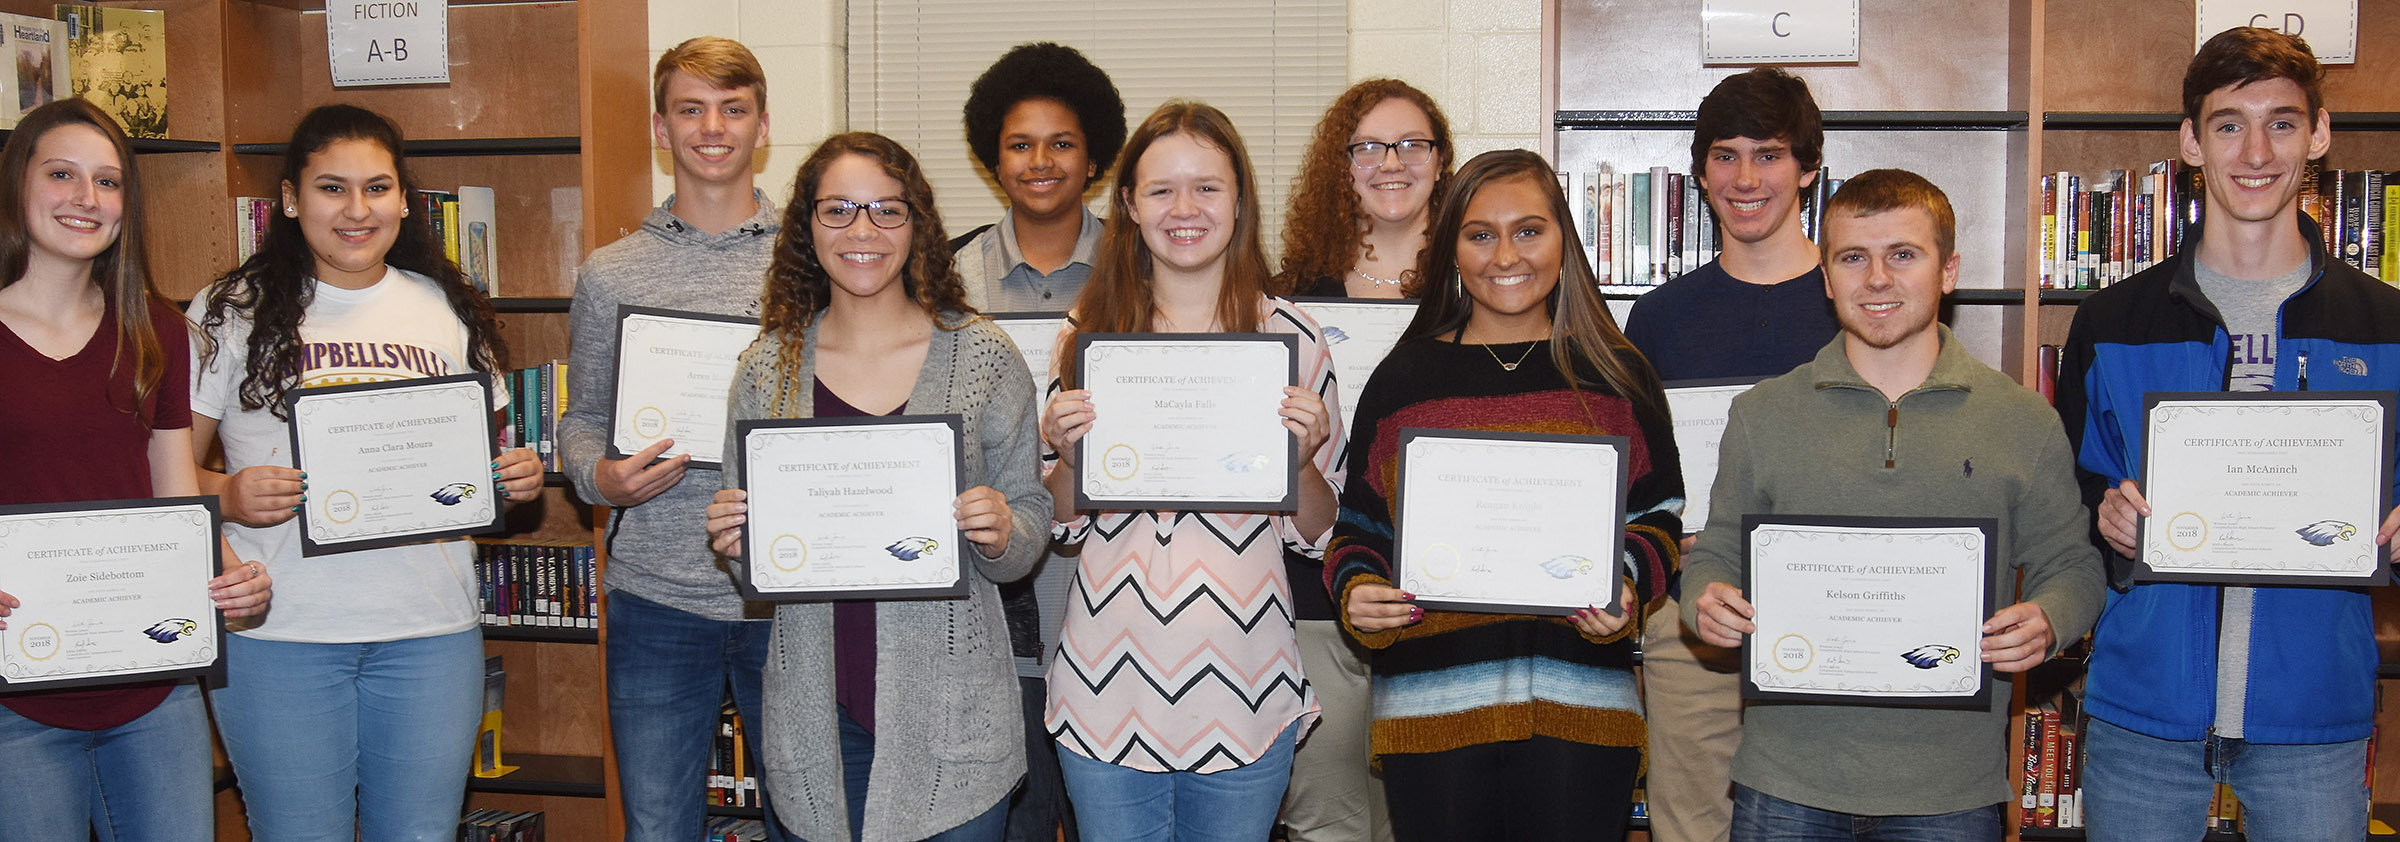 CHS academic achievers for November were honored at the Campbellsville Board of Education meeting on Monday, Nov. 12. They are, from left, sophomores Zoie Sidebottom, Anna Clara Moura and Arren Hash, junior Taliyah Hazelwood, freshmen Tezon Mitchell and MaCayla Falls, junior Emily Rodgers, senior Reagan Knight, freshman Peyton Dabney, junior Kelson Griffiths and senior Ian McAninch. Absent from the photo is senior Davon Cecil.